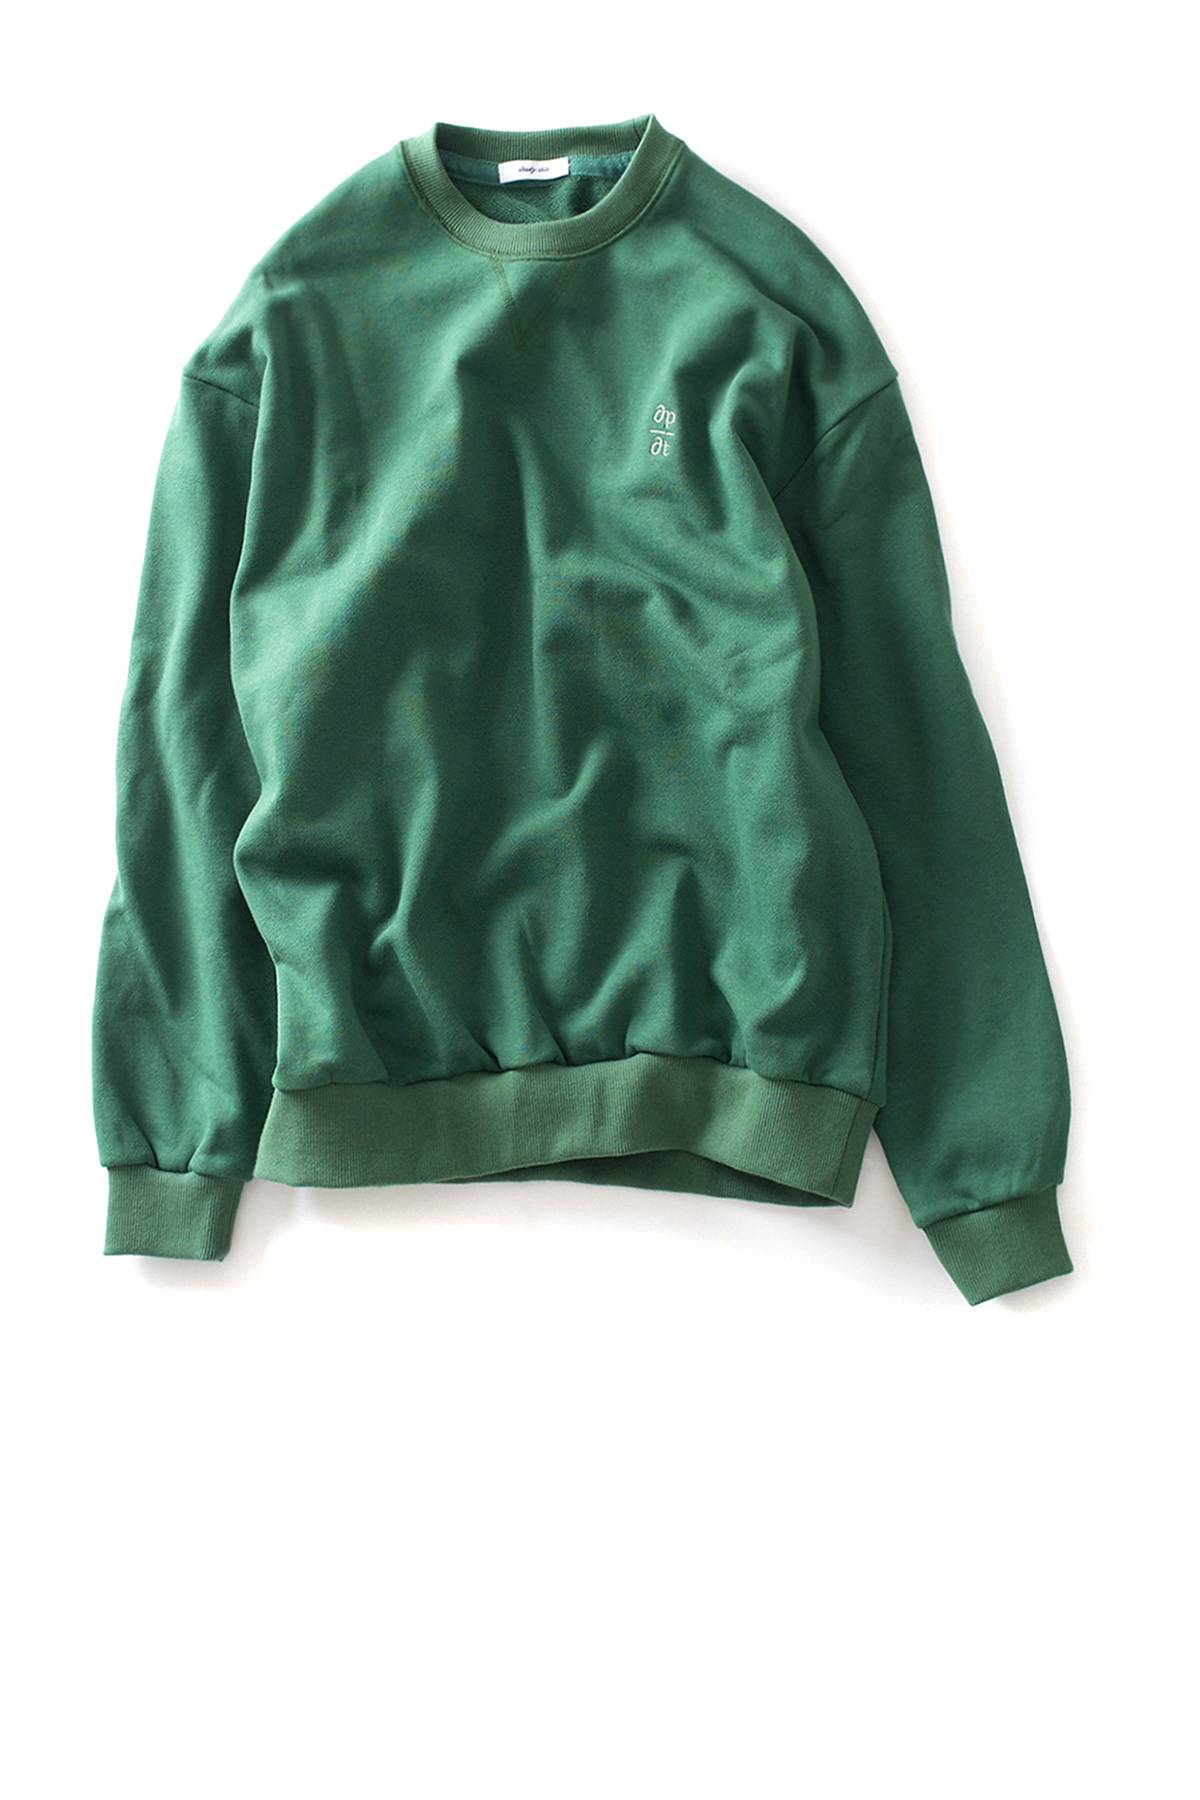 steady state : Sweatshirt (Green)